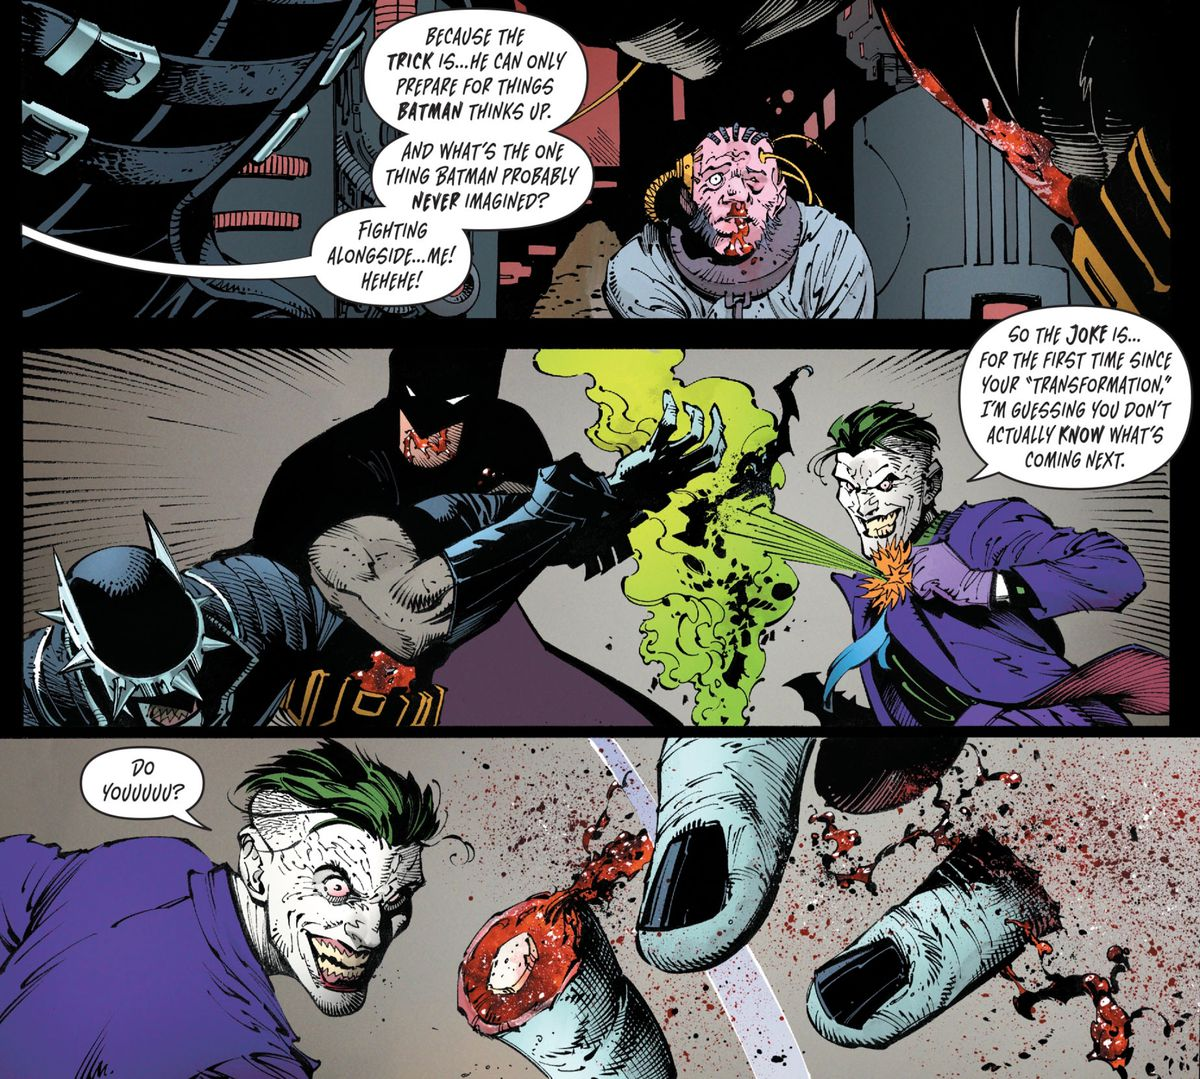 The Joker and Batman fight the Batman Who Laughs (the Monitor looks on) in Dark Nights: Metal #6, DC Comics (2018).